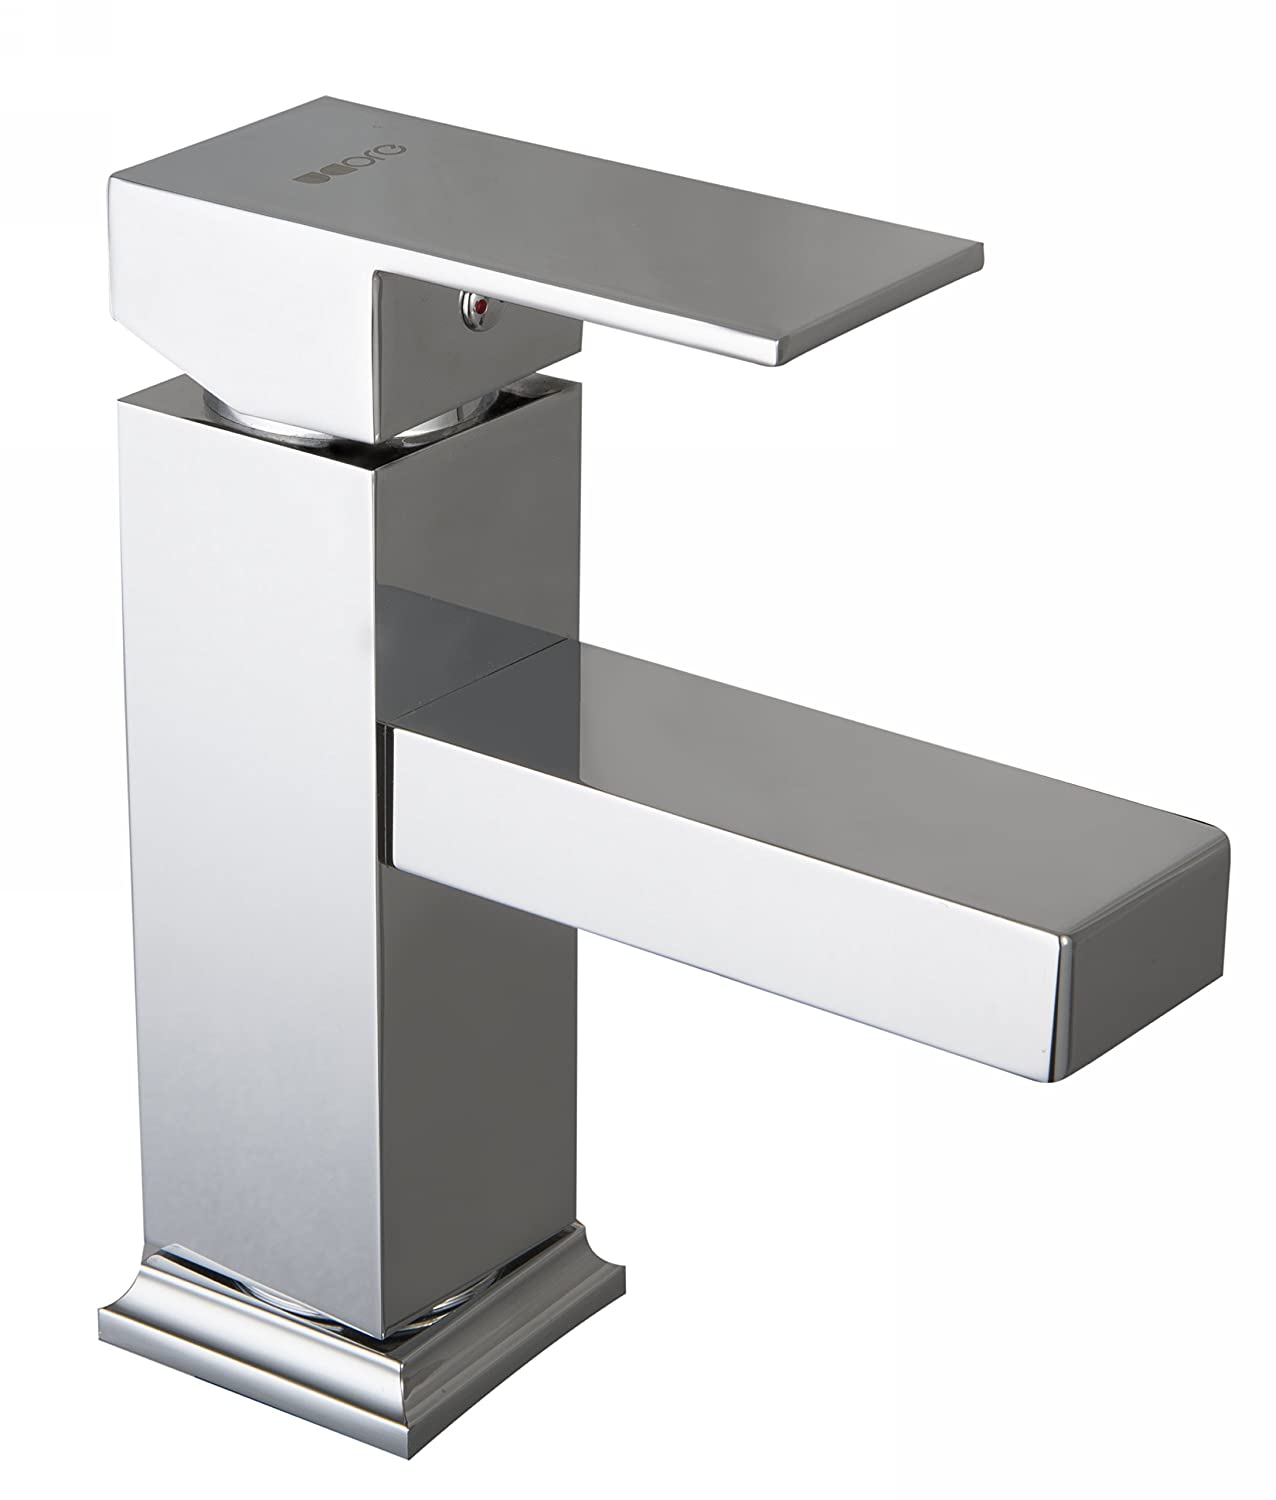 8.78 by 4.84 by 10.83-Inch Ucore Basin Mixer Faucet Silver Ucore Inc UFC11PS0012